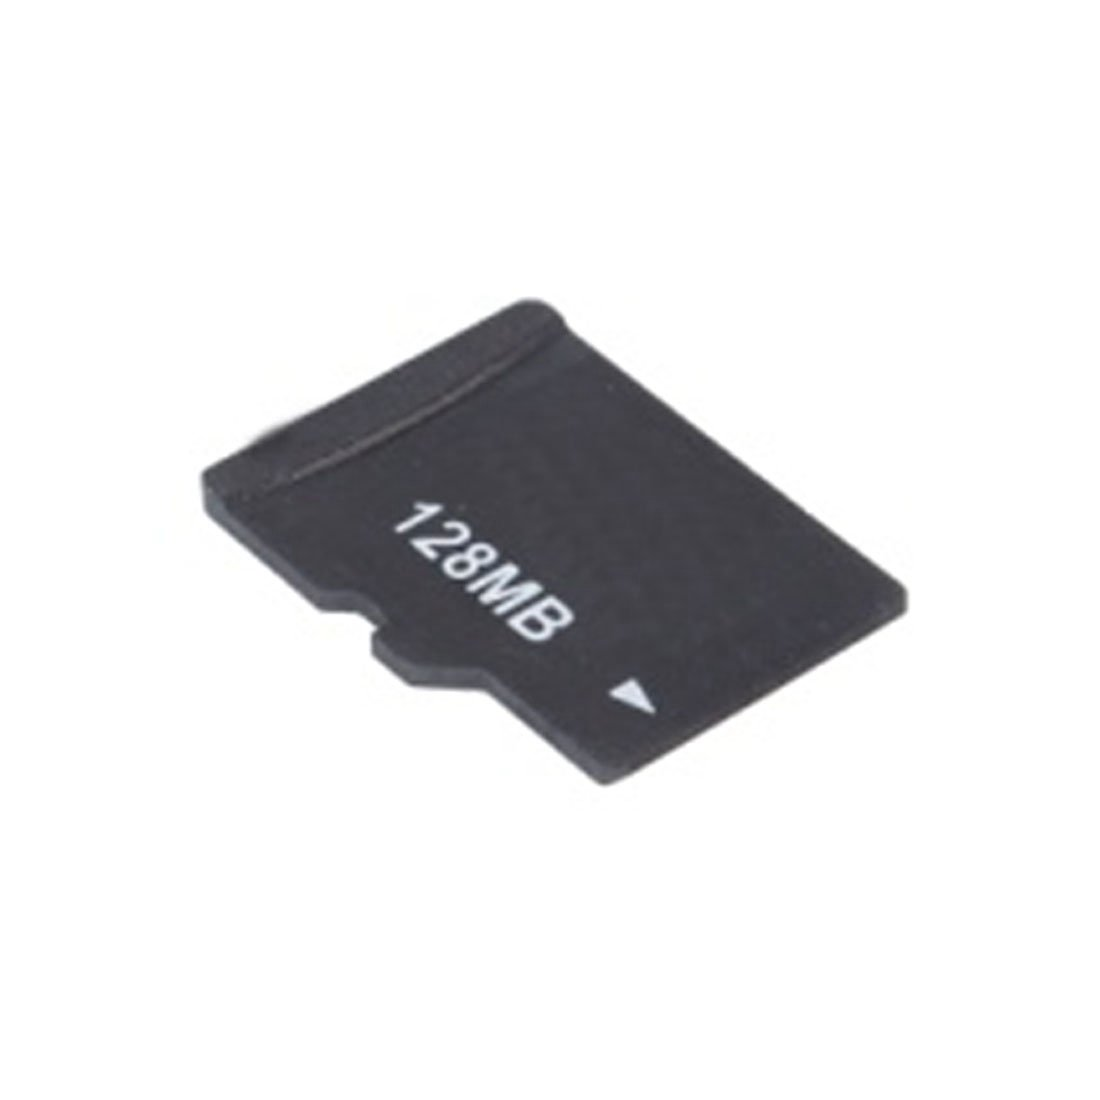 Memory Card - TOOGOO(R)128MB Micro SD TF Memory Card For Samsung Galaxy S5 S4 S3 Note 4 3 2 Android Tablet by TOOGOO(R) (Image #1)